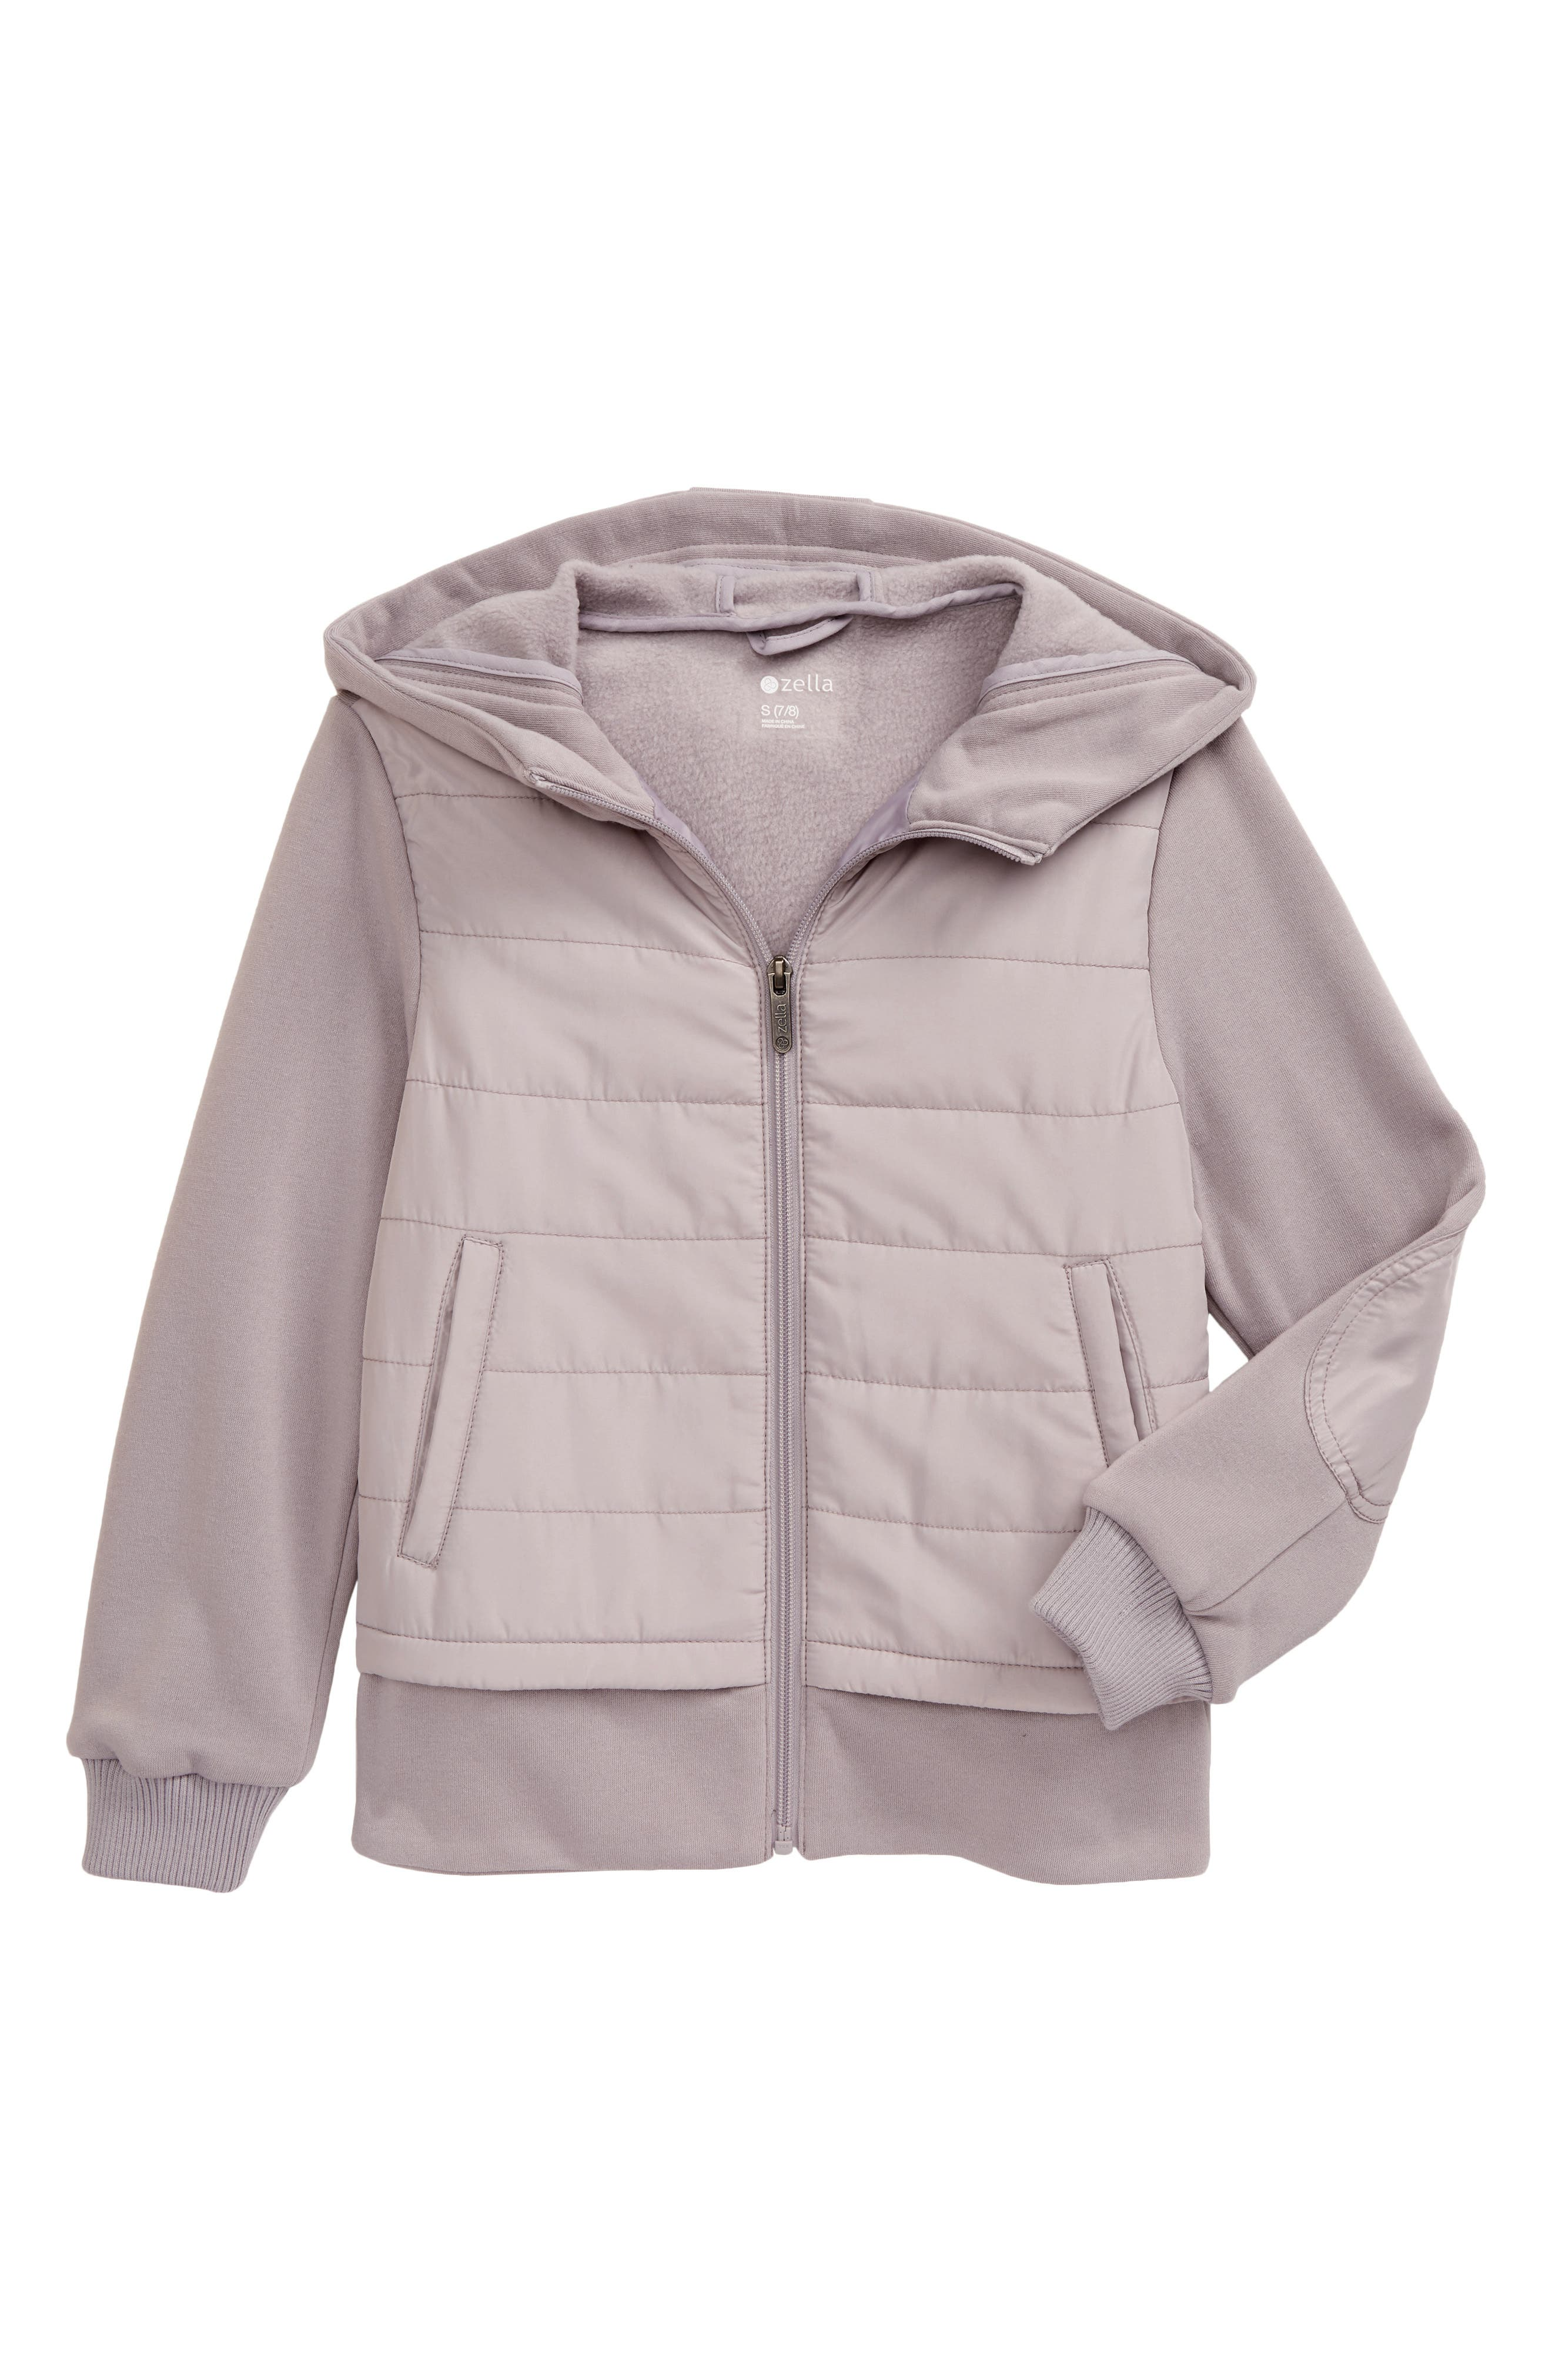 A channel-quilted woven overlay brings mixed-media appeal-while adding an extra chill-blocking layer-to this cozy French terry jacket topped with a roomy hood. Style Name: Zella Girl Mixed Media Hooded Jacket (Little Girl & Big Girl). Style Number: 6020776. Available in stores.